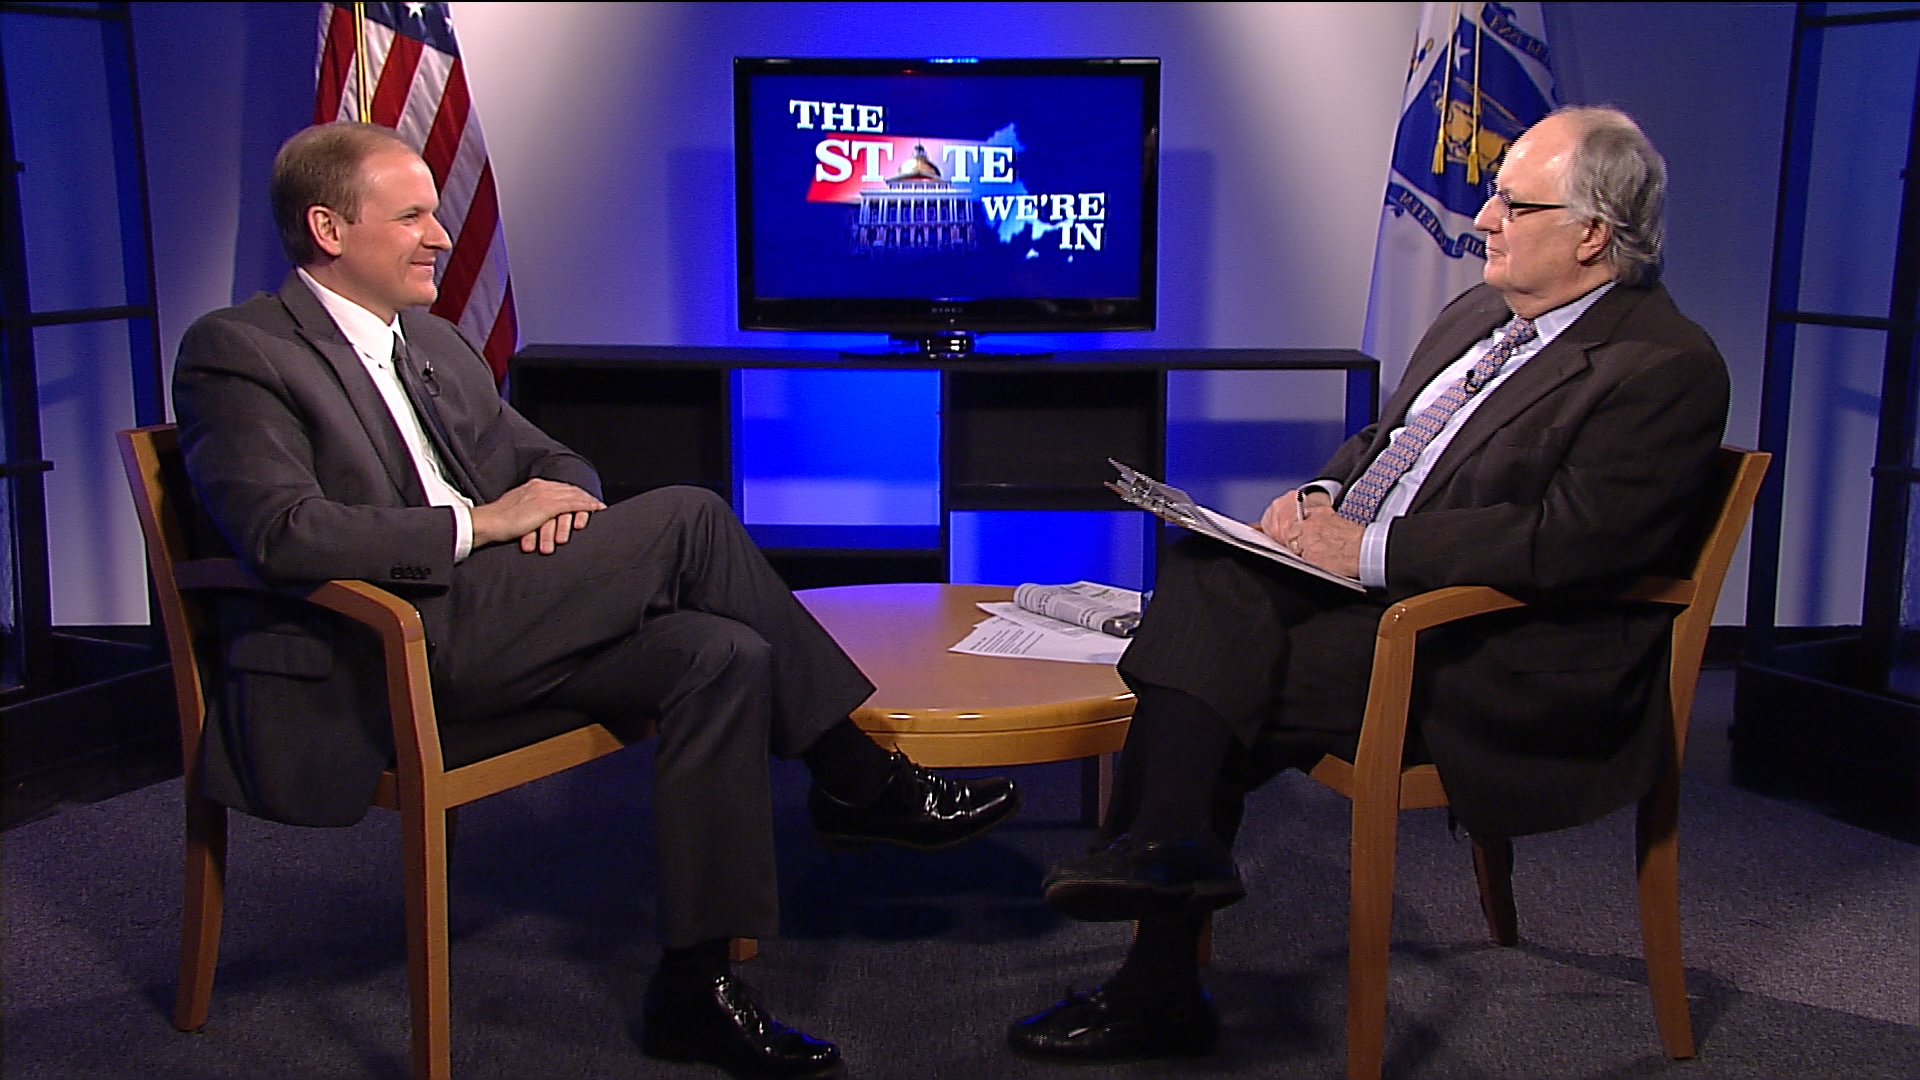 Rep. Todd Smola discusses the House version of the Fiscal Year 2017 Massachusetts state budget up for debate this coming week.